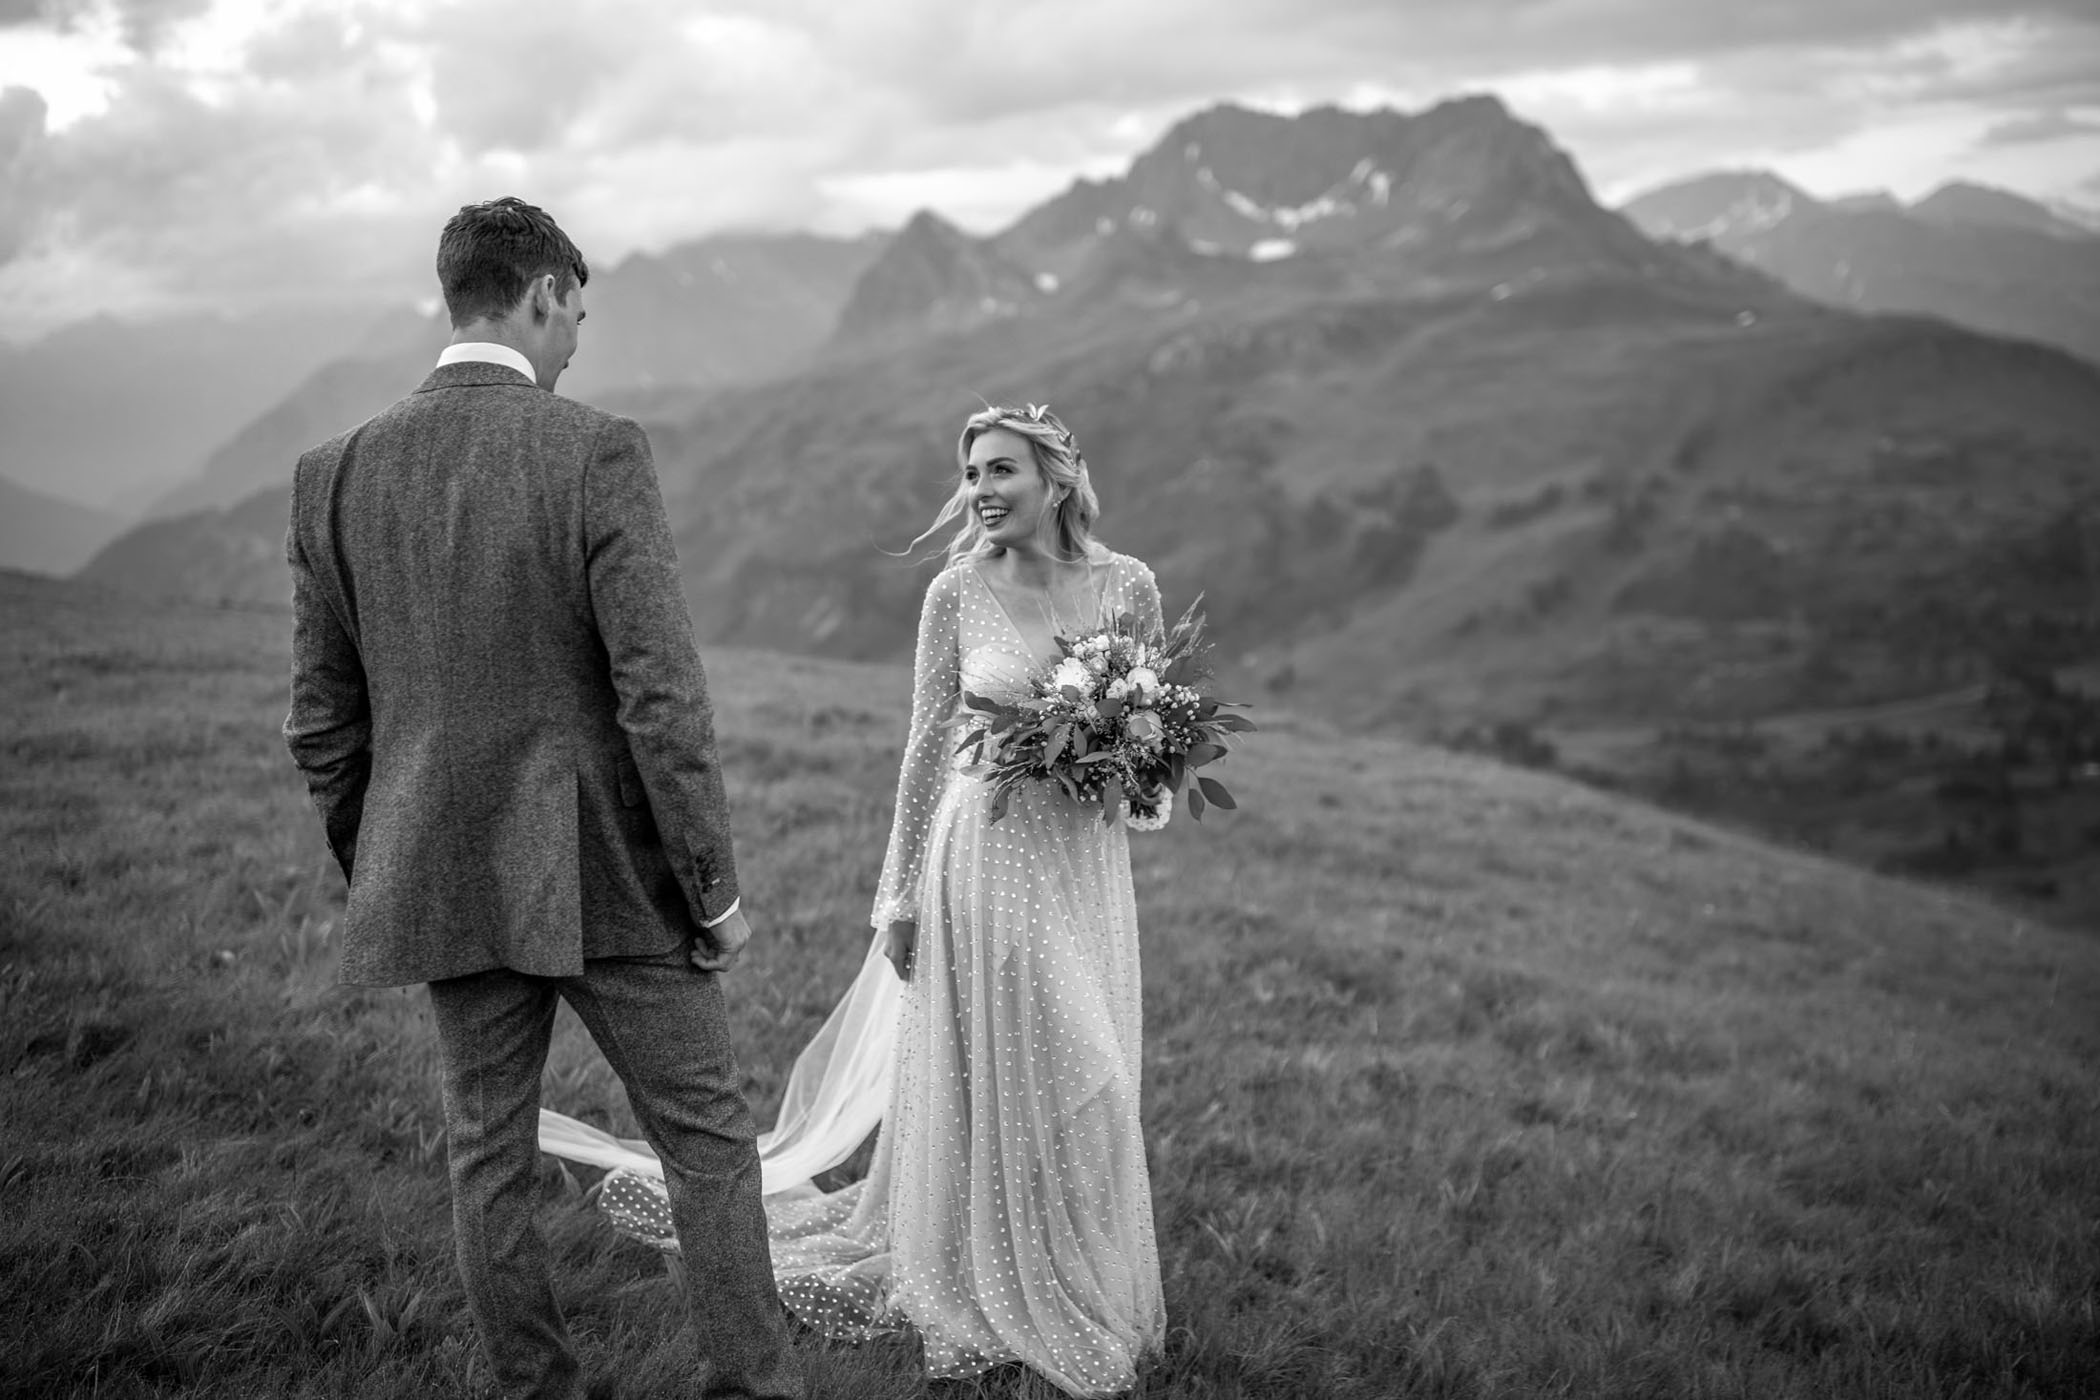 Bride stares lovingly at her groom as she approaches him